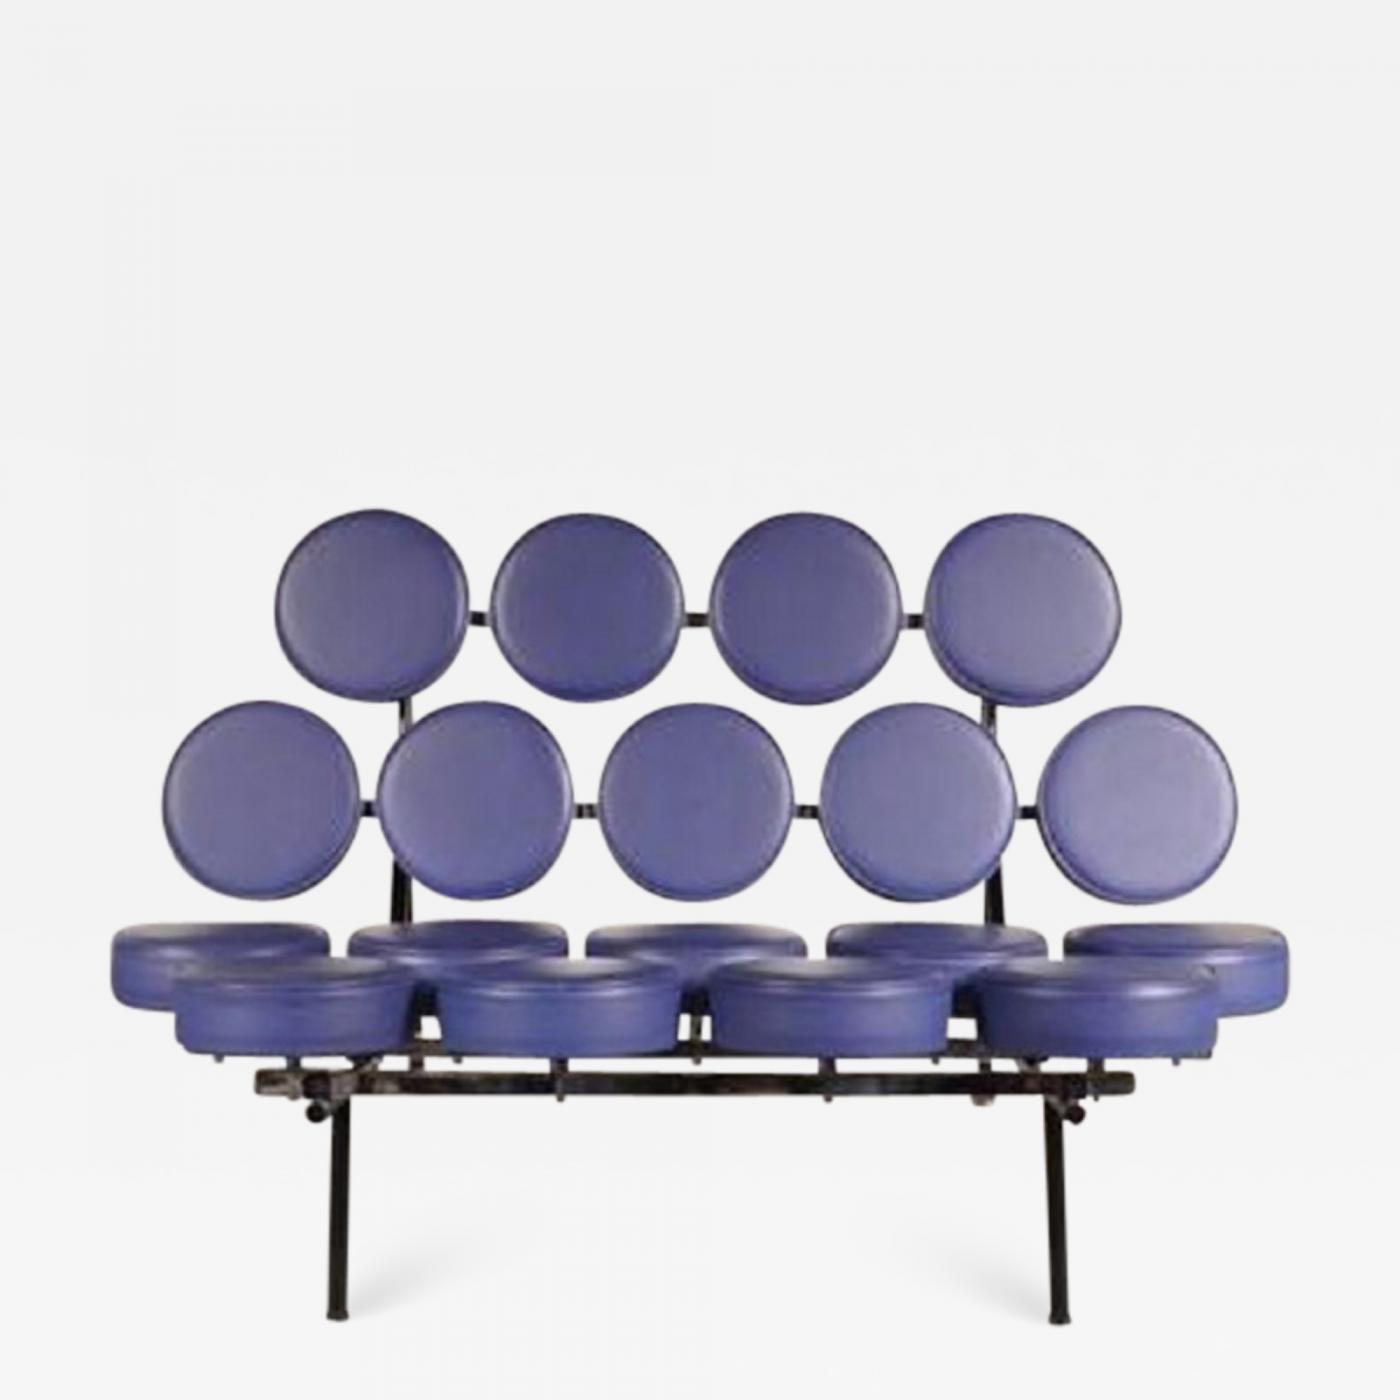 1994s marshmallow sofa by george nelson for vitra germany rh incollect com  george nelson marshmallow sofa price